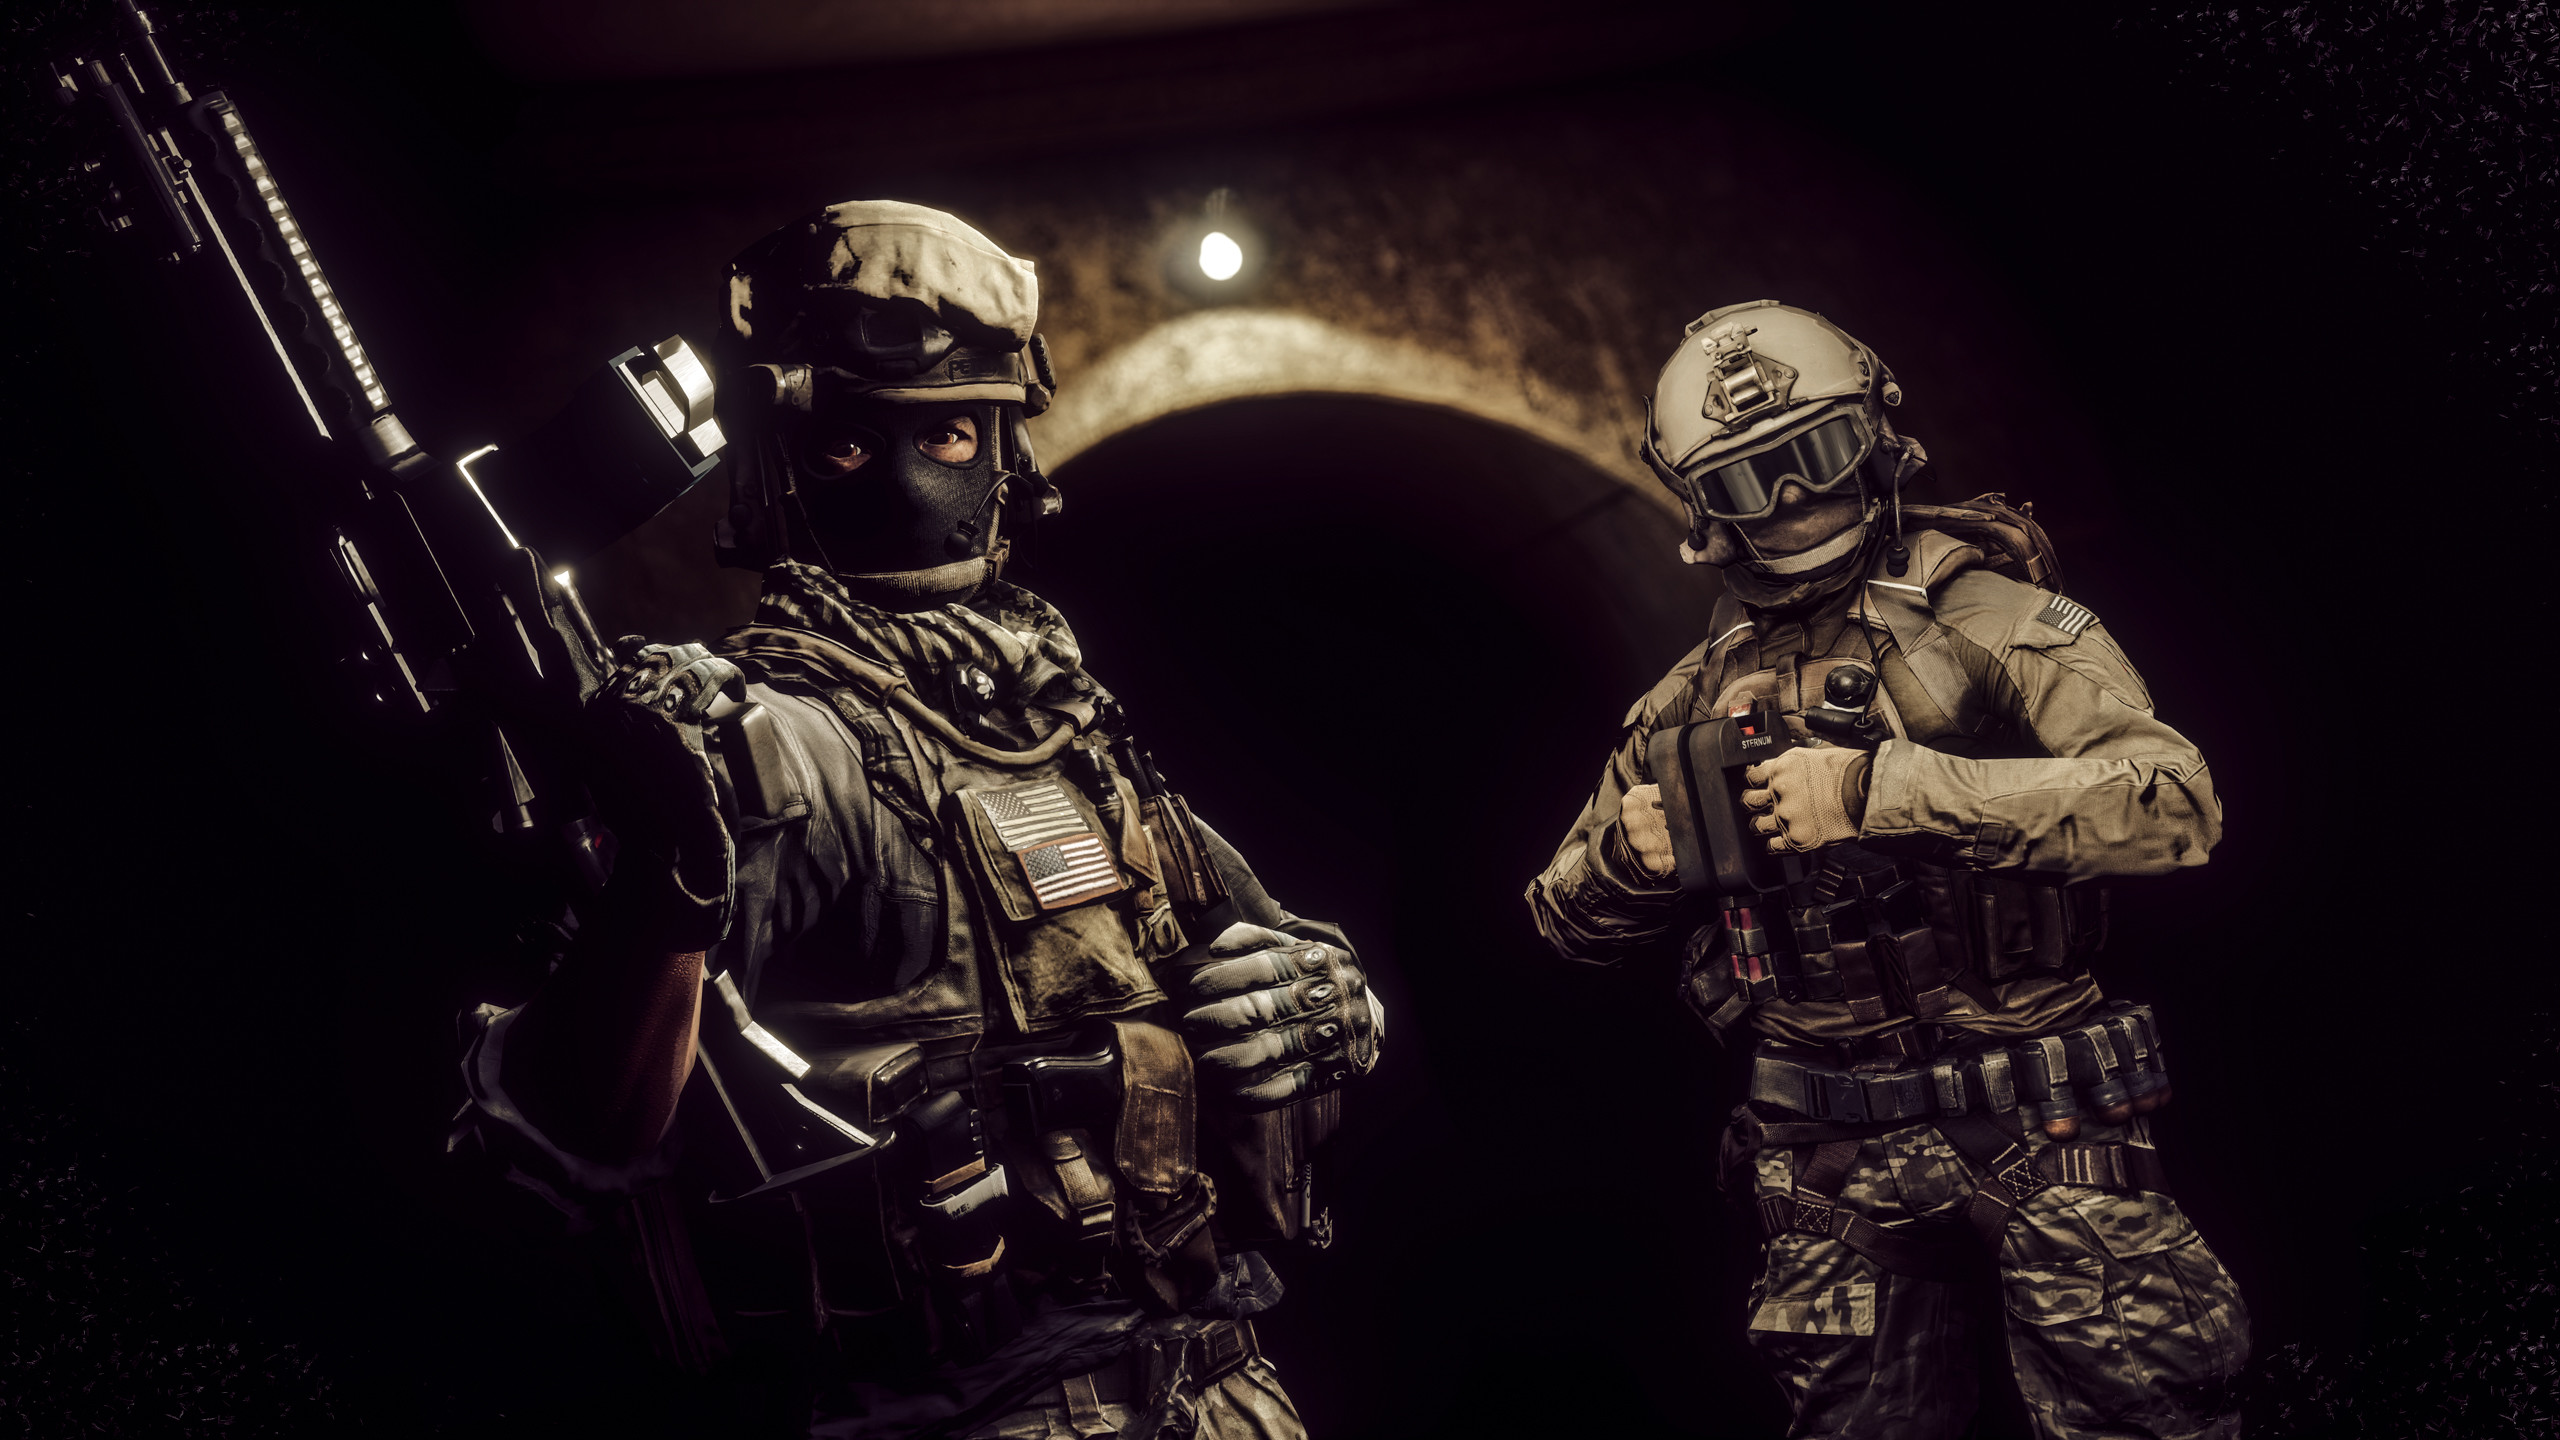 Games / Soldiers Wallpaper